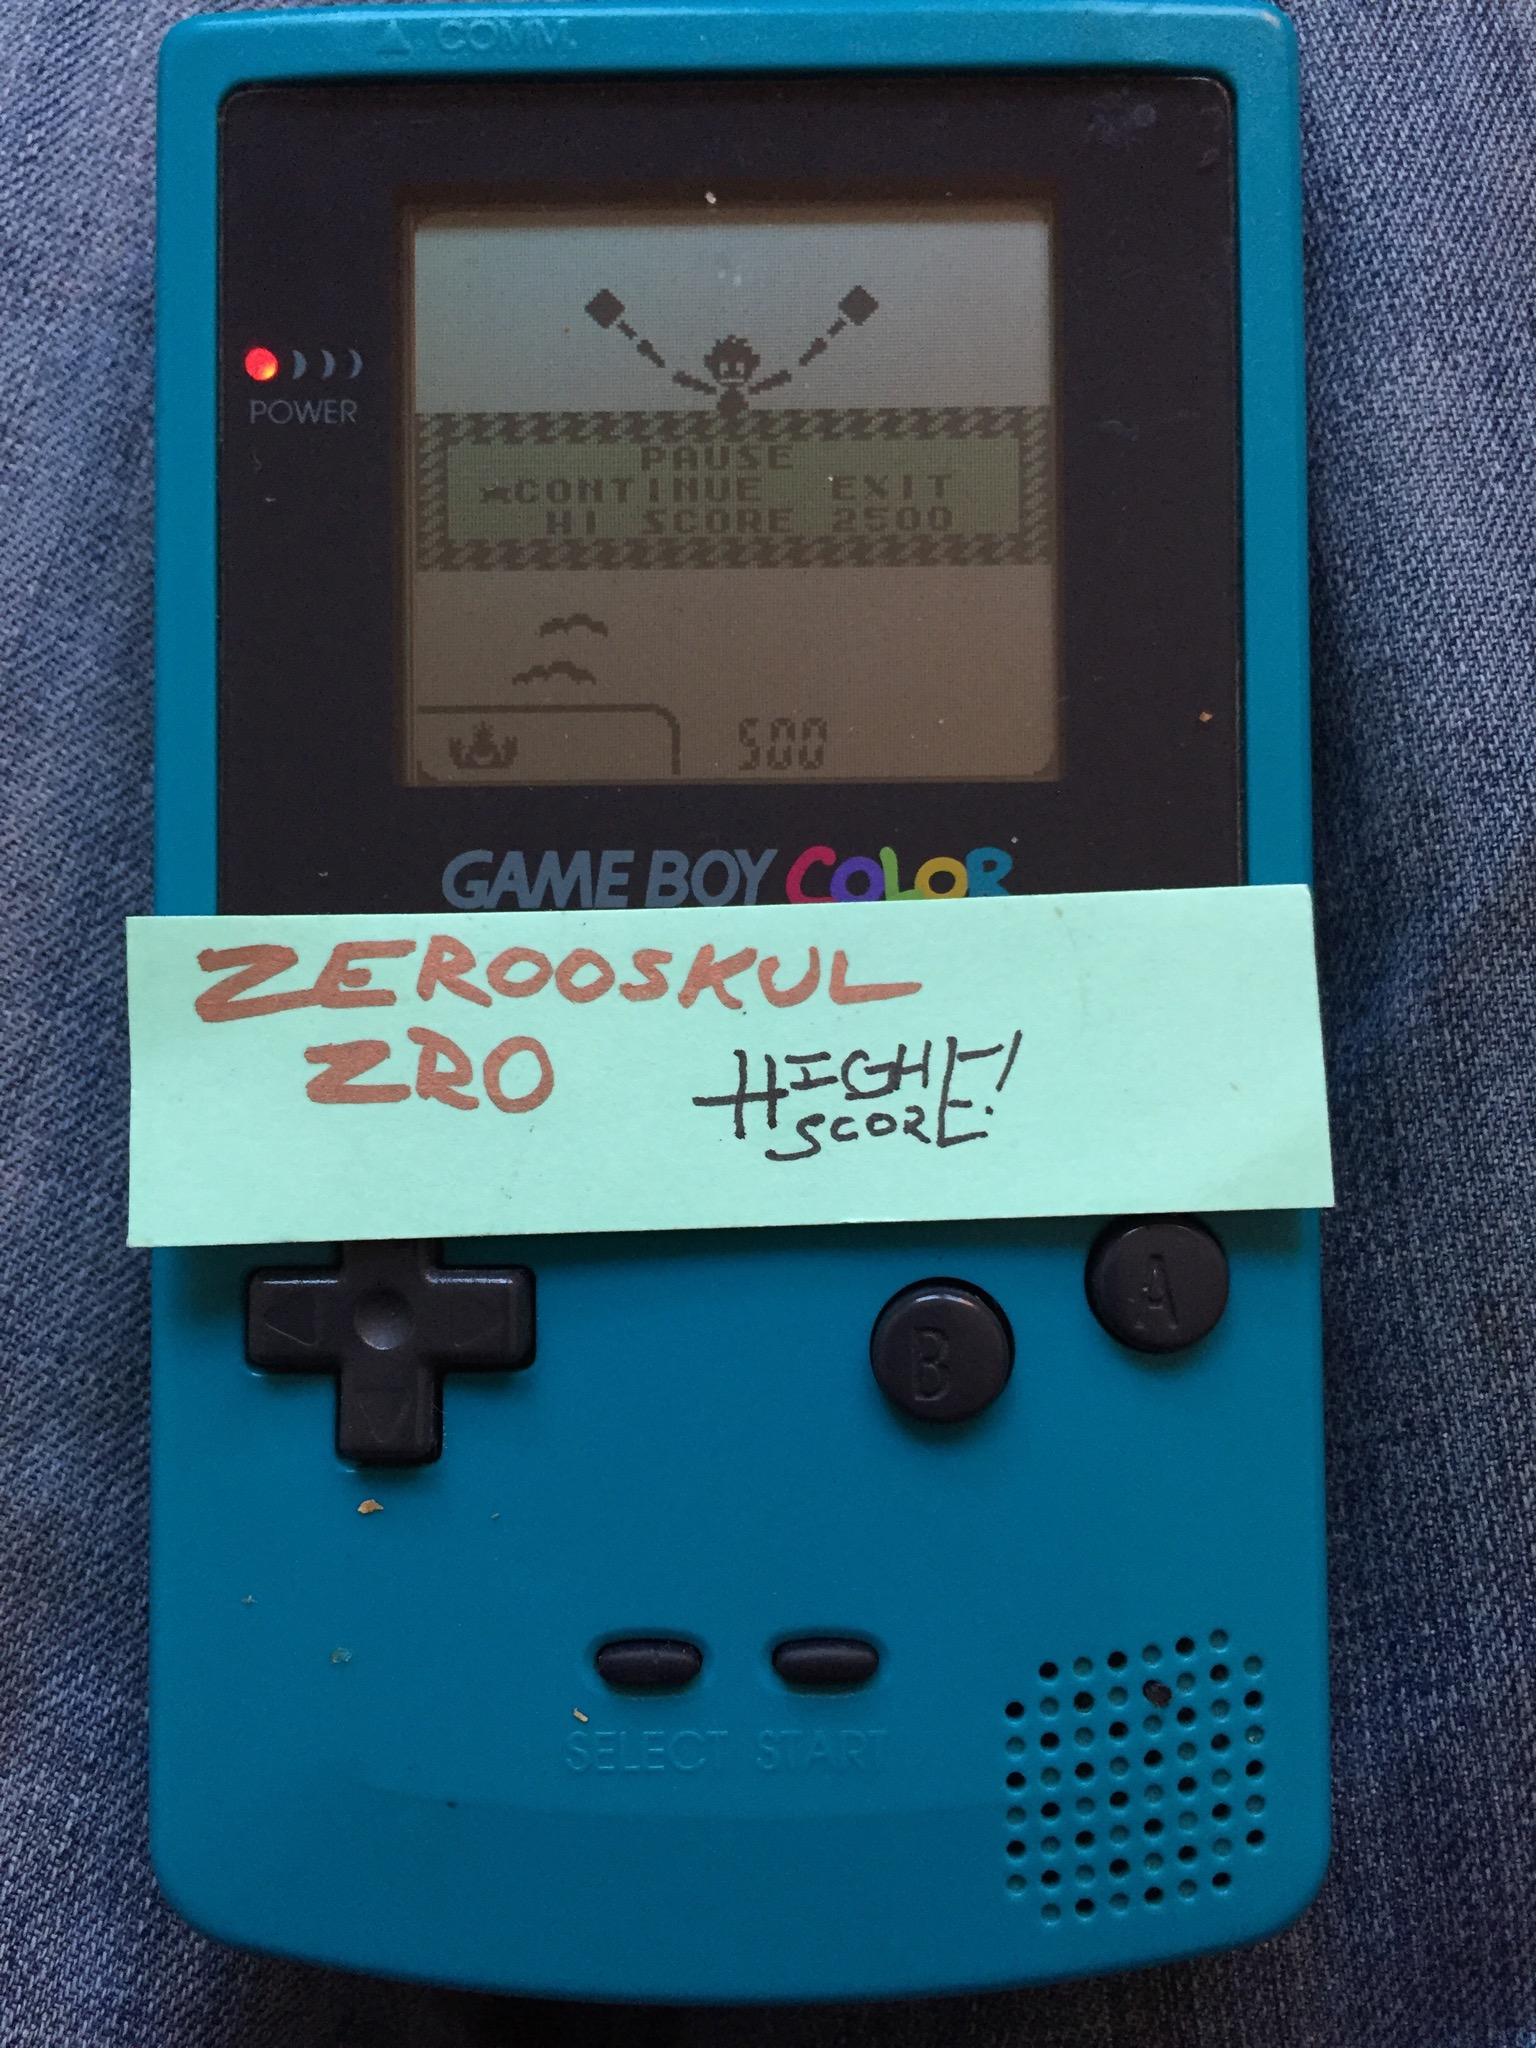 zerooskul: Game & Watch Gallery 2: Vermin: Classic: Easy (Game Boy Color) 2,905 points on 2018-06-30 17:31:05